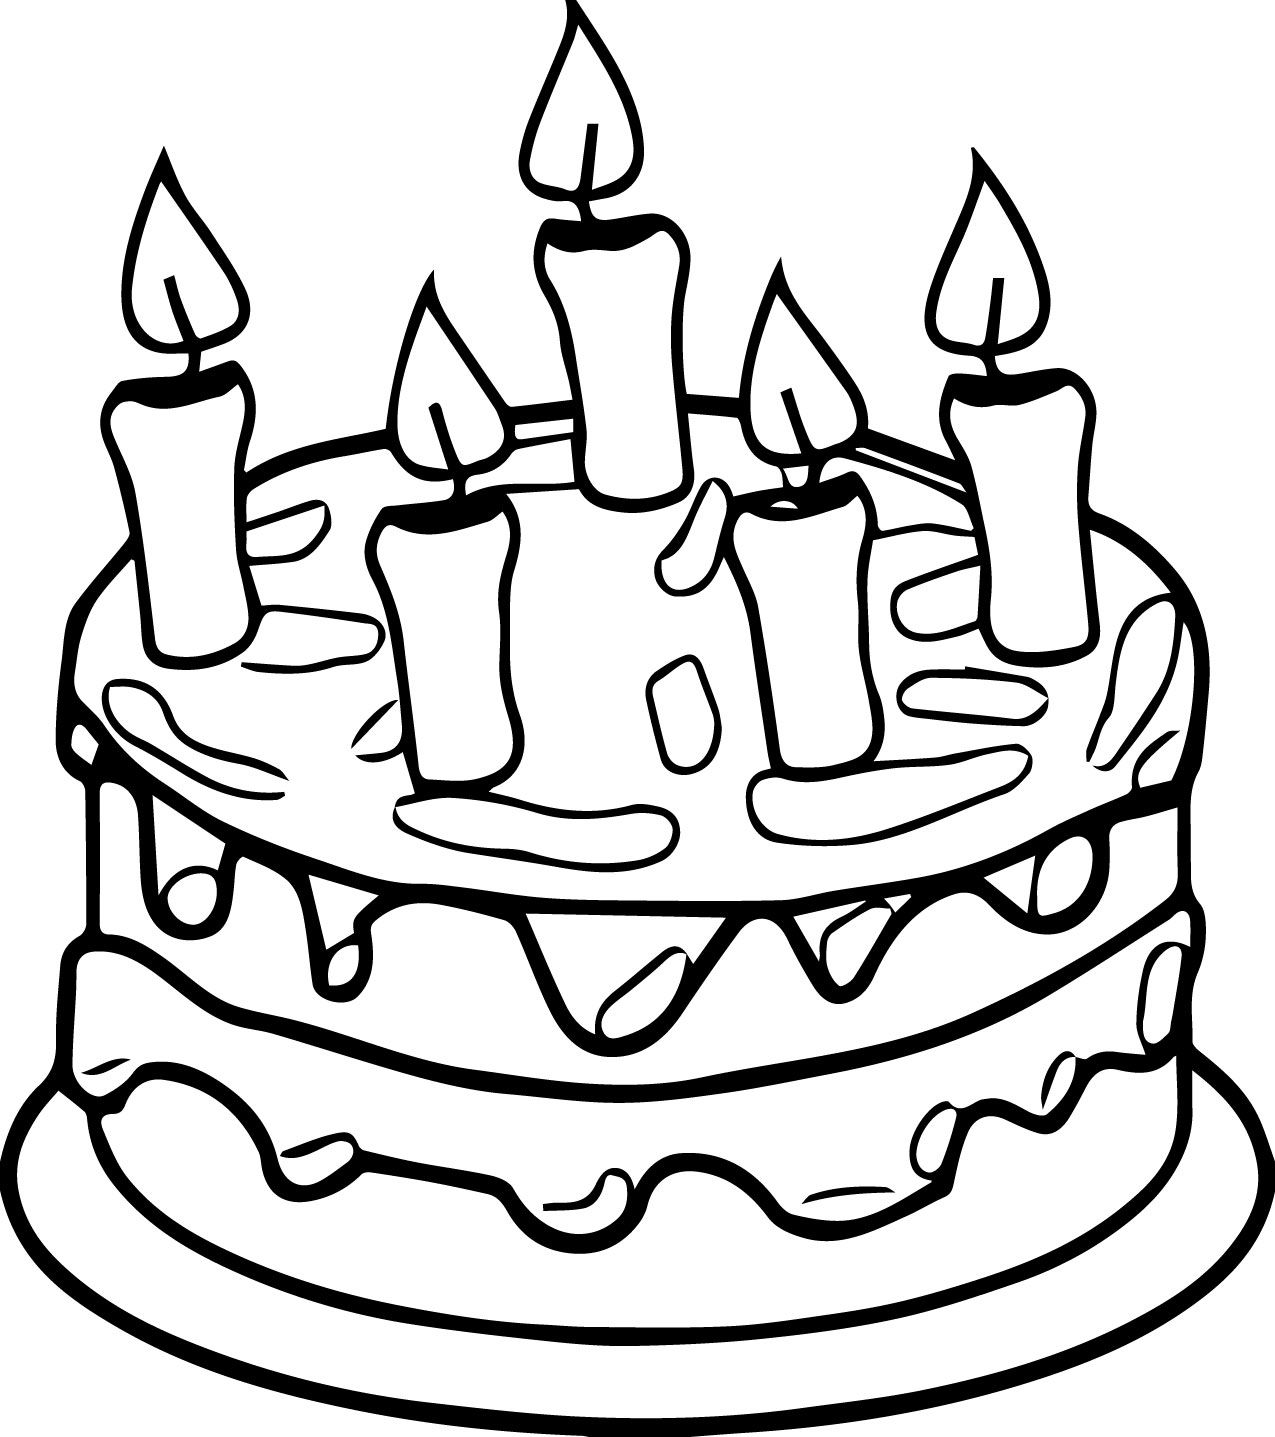 Birthday Coloring Pages Free Printable Coloring Page Birthday 5 Entertai Birthday Coloring Pages Free Printable Coloring Pages Happy Birthday Coloring Pages